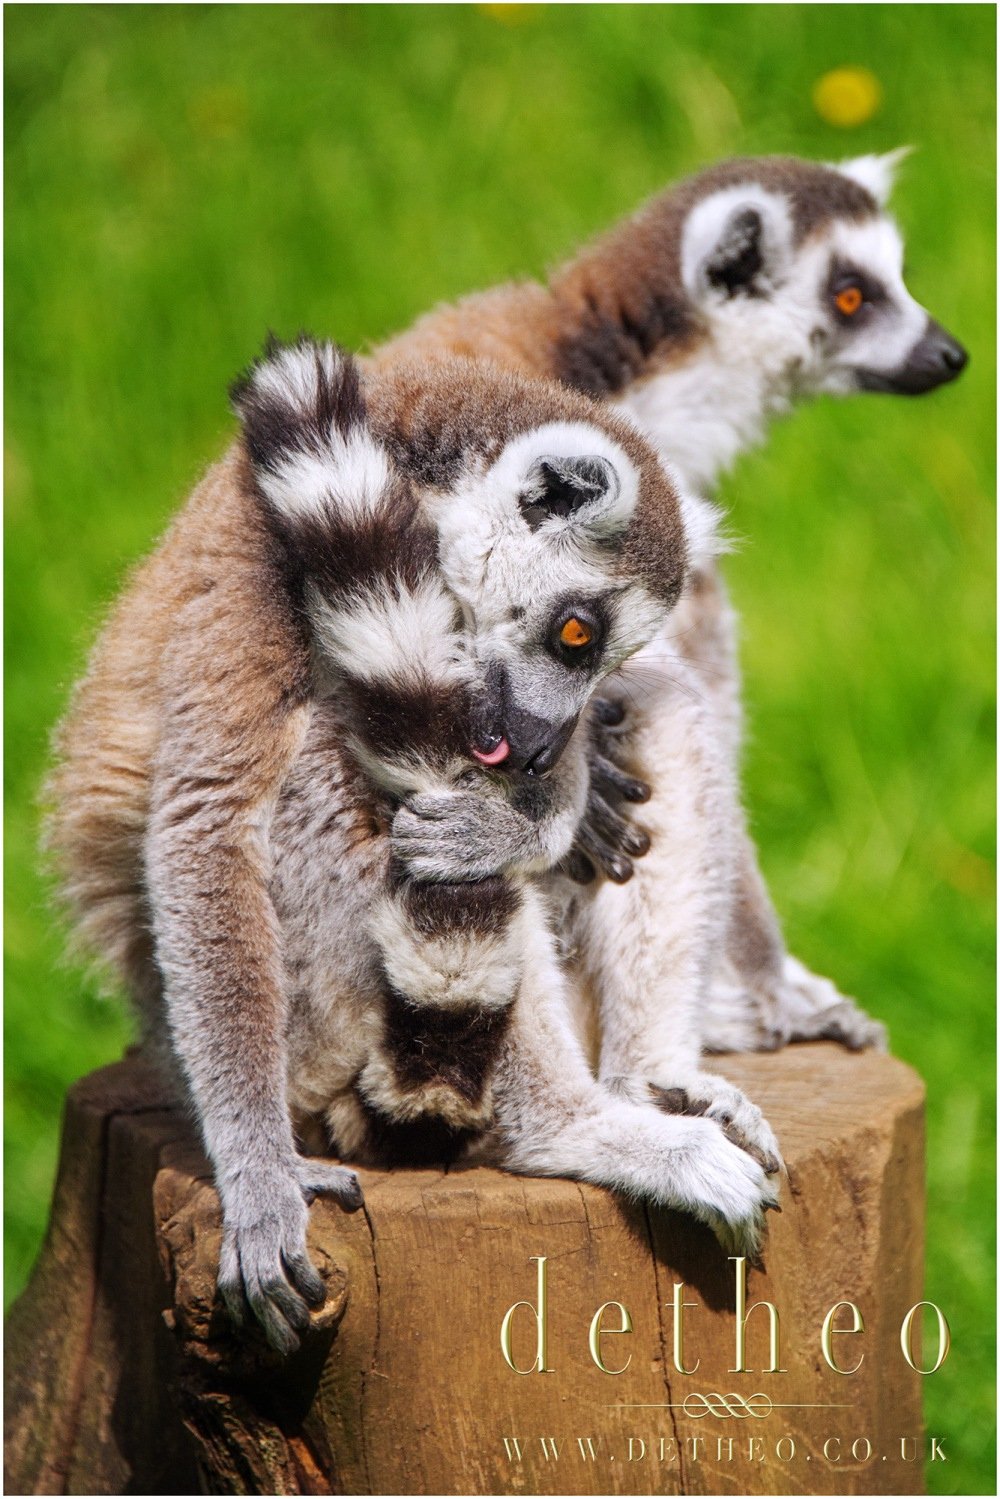 Photograph of Lemurs at Woburn Safari Park. Captured by Photographer Detheo Photography.